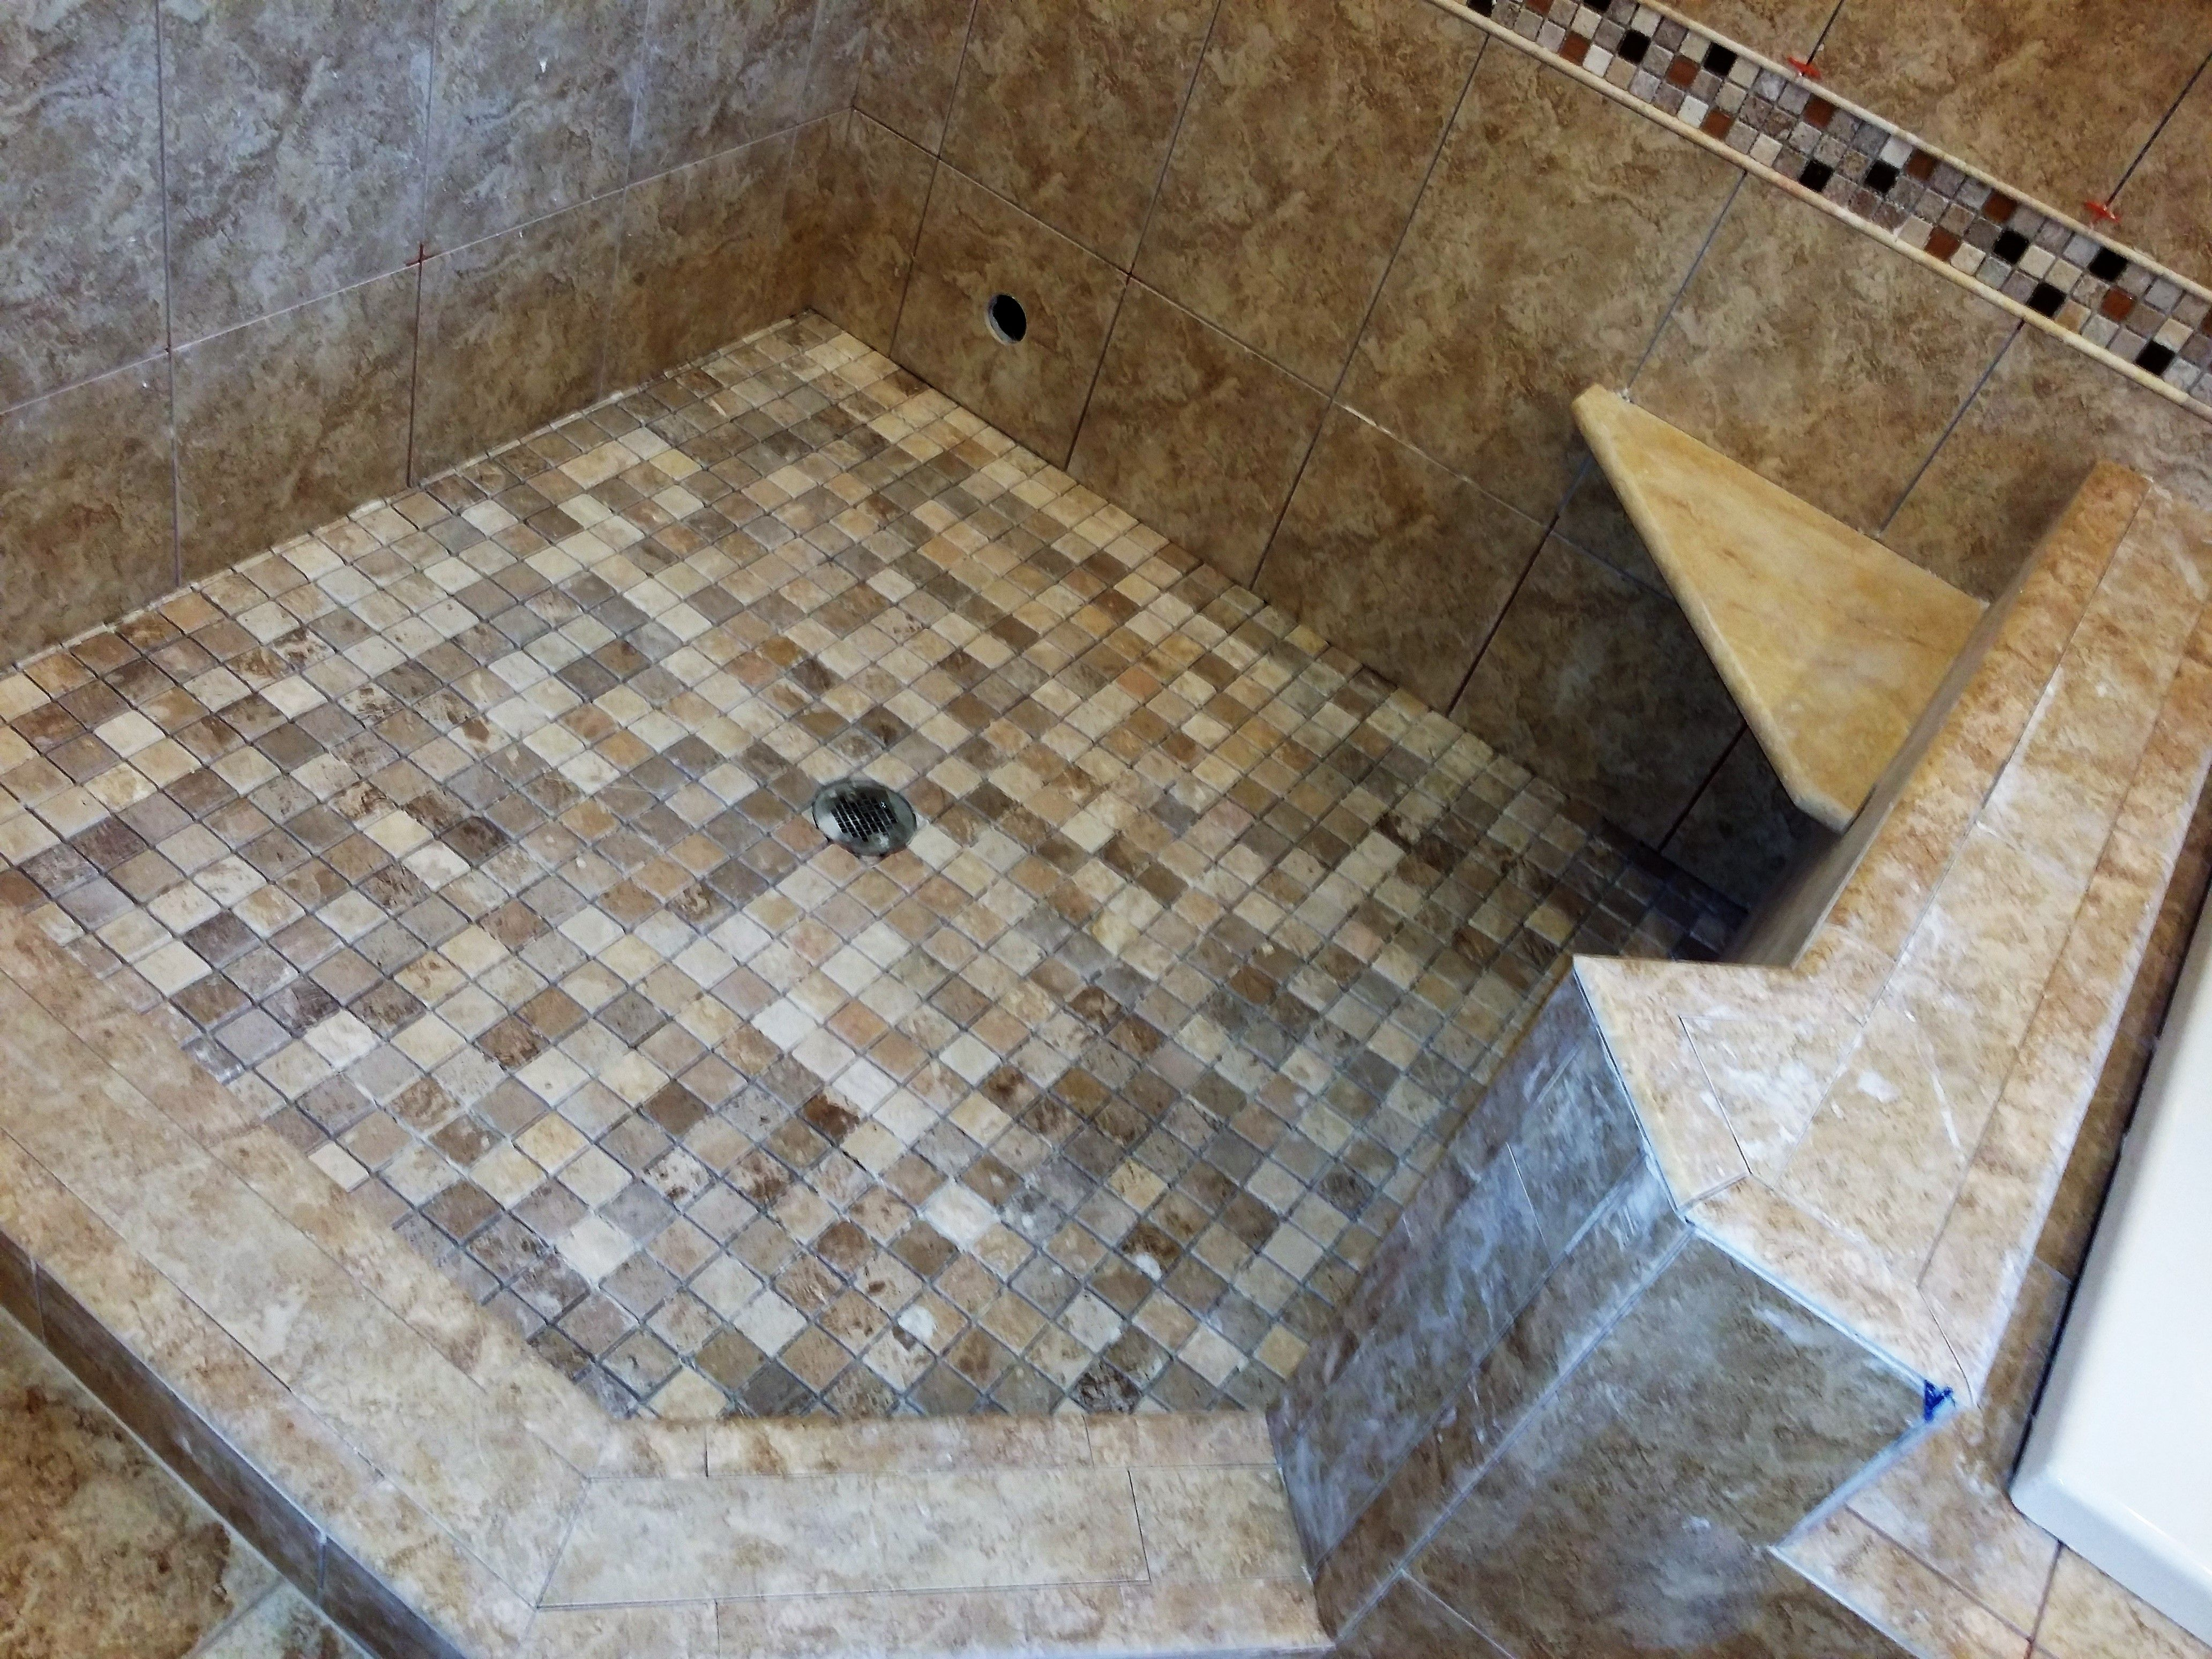 Mosaic shower tile floor with corner seat knee wall and accent tile